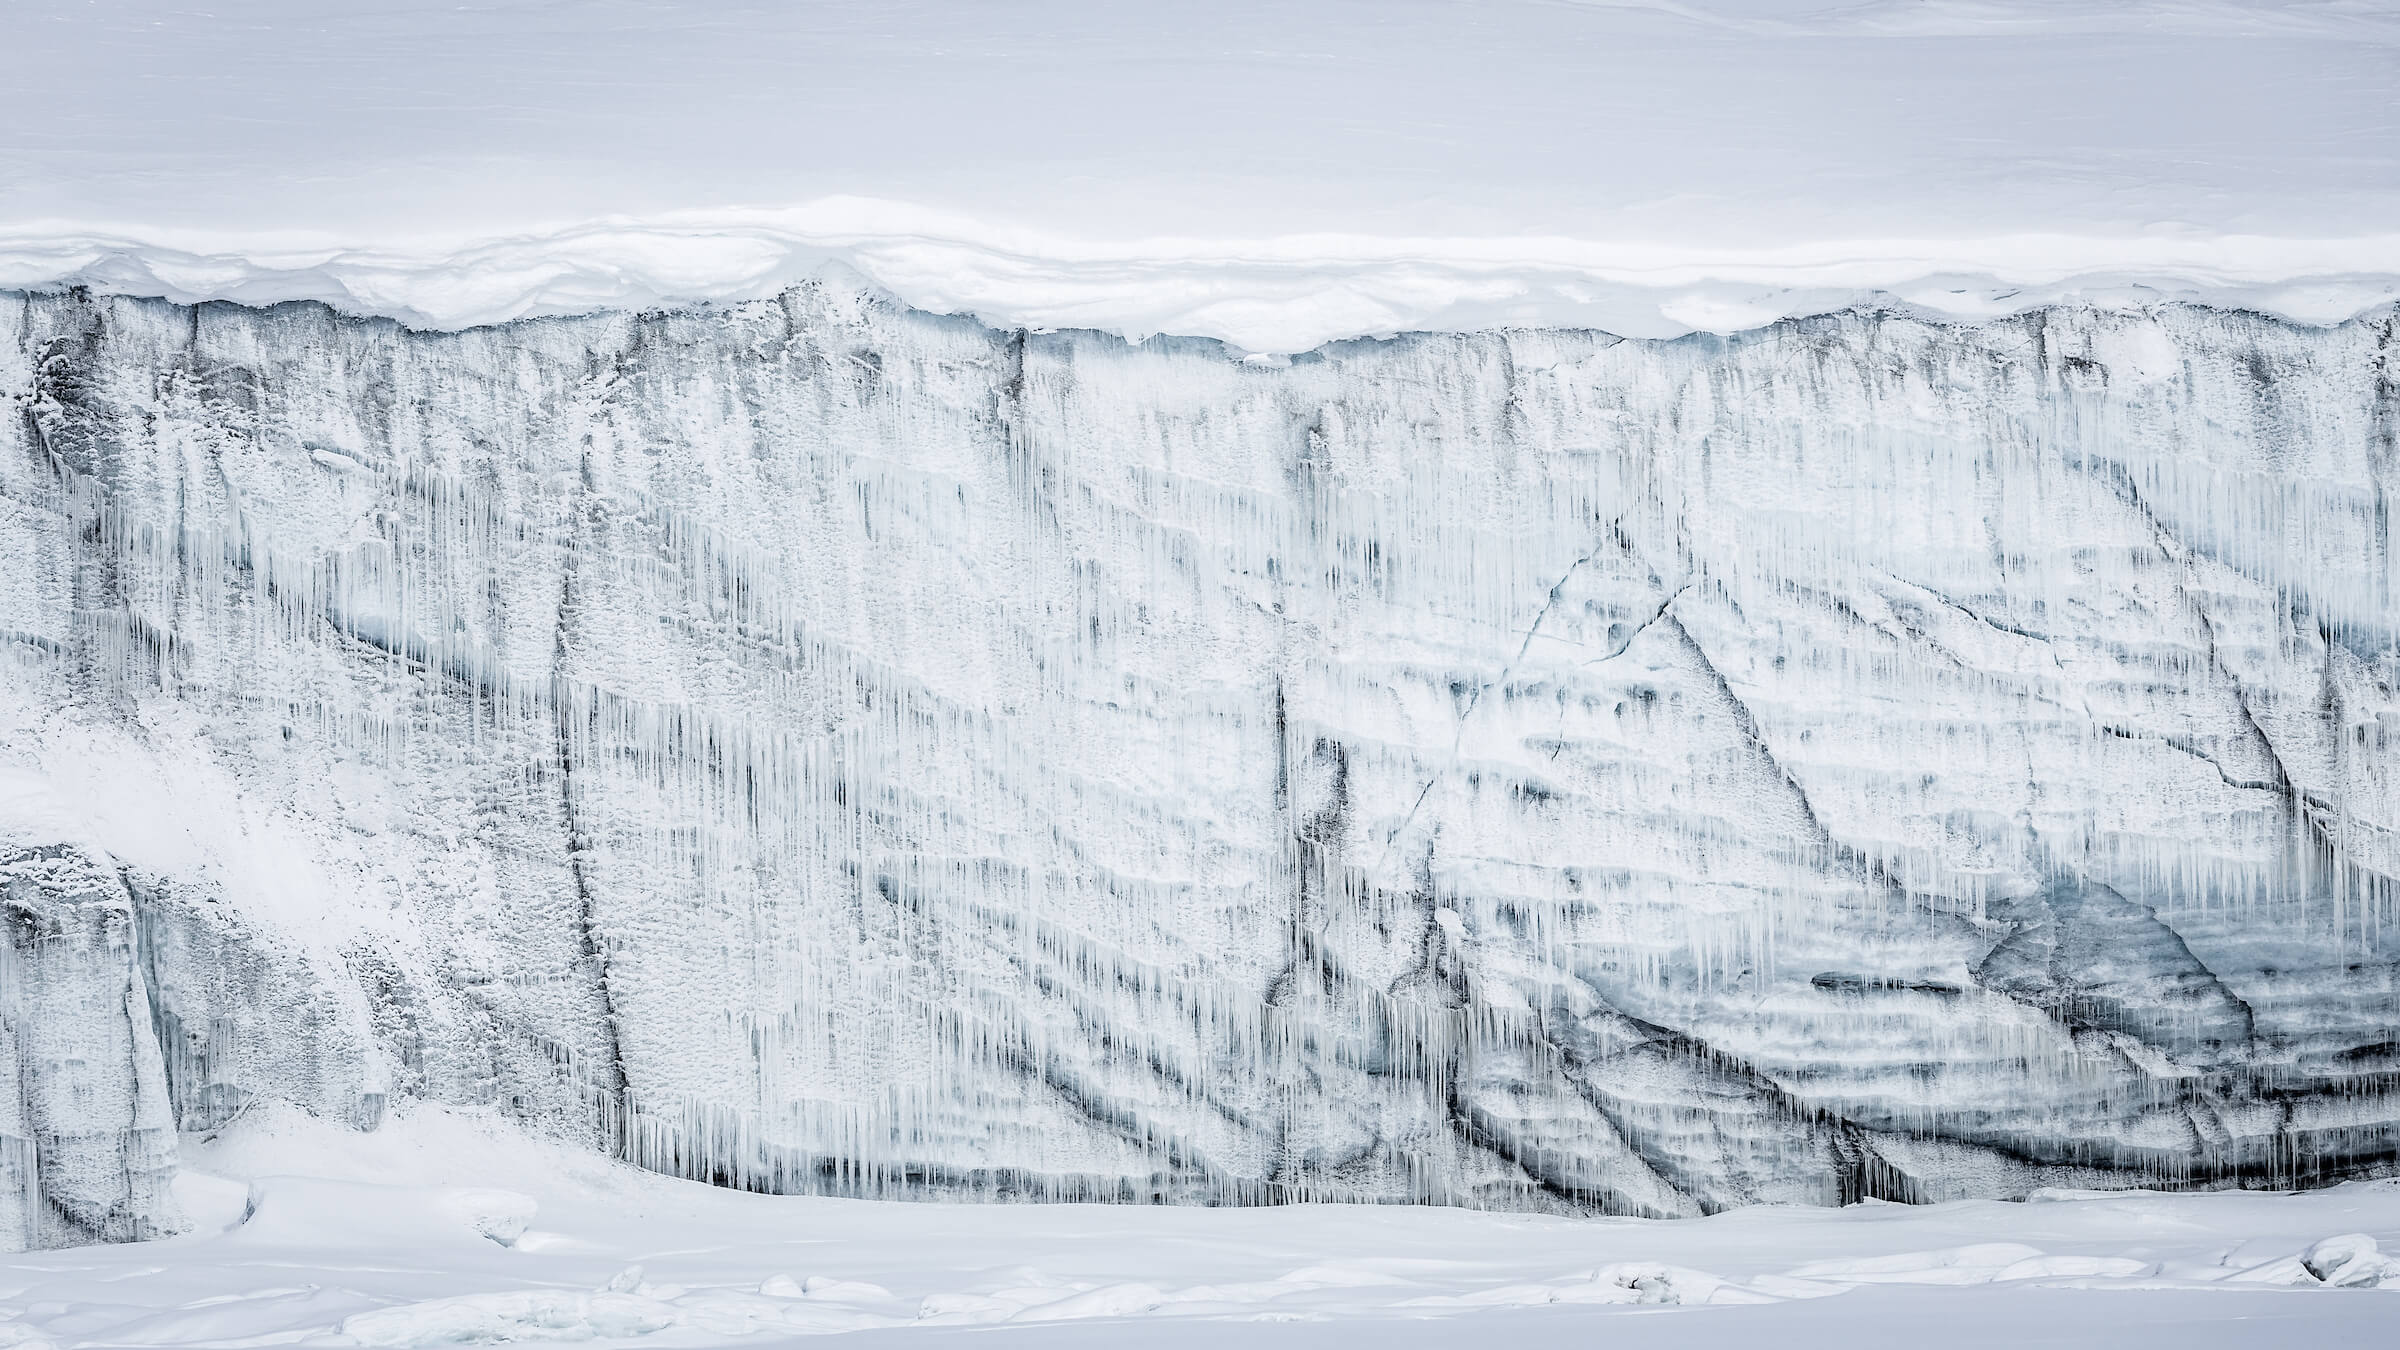 Even an iceberg itself can grow icesicles. Photo by Samuel Letecheur